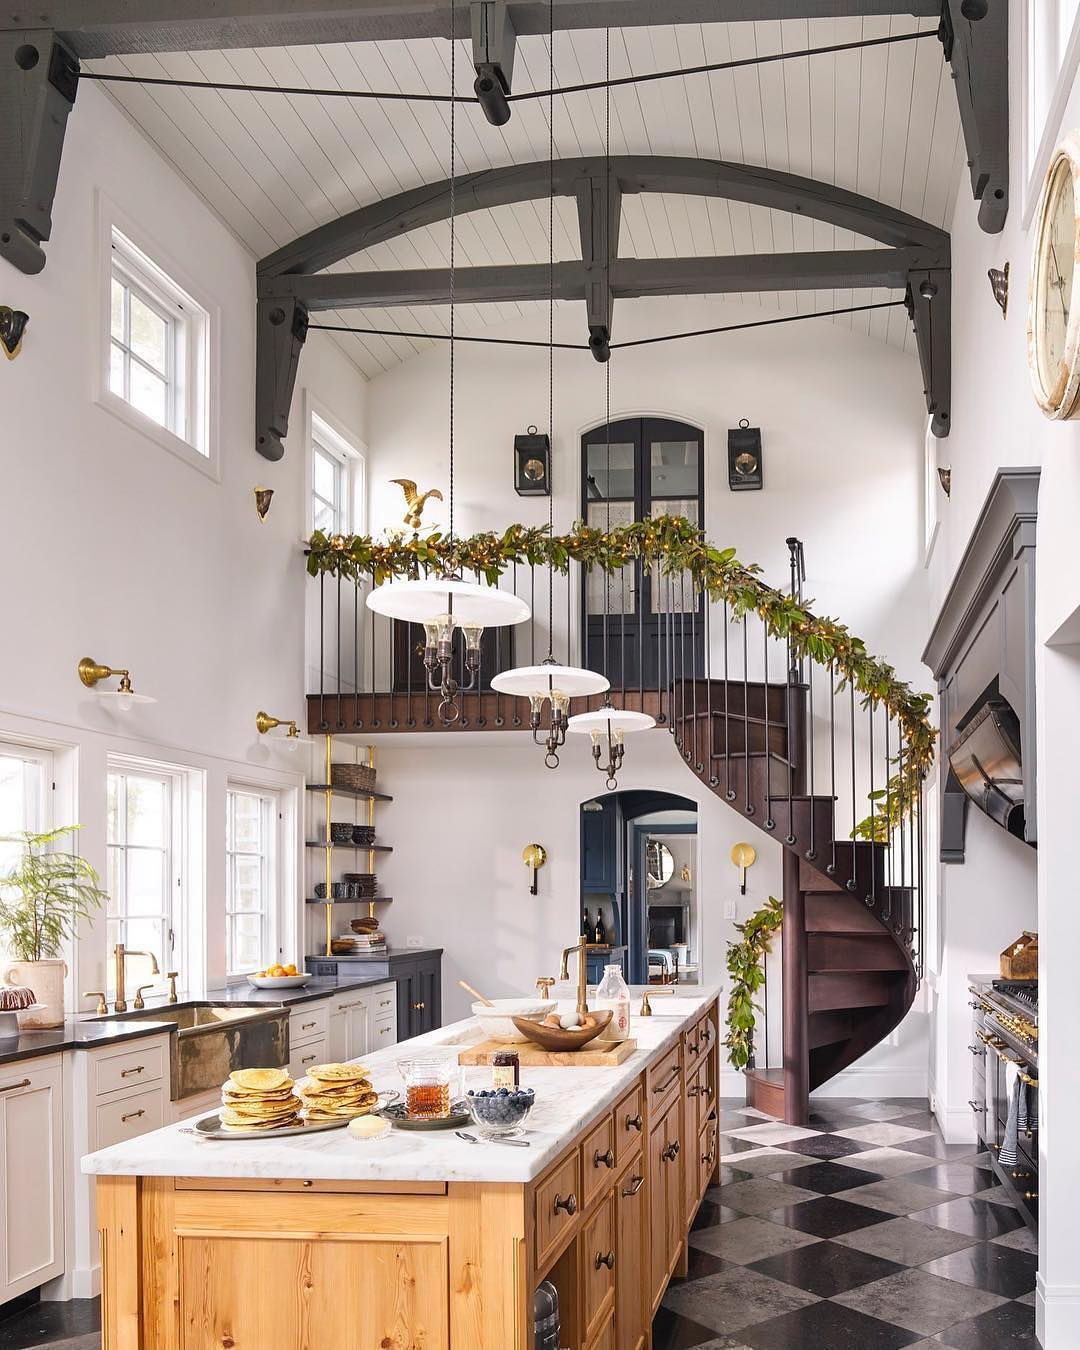 10 Best Farmhouse Spaces We've Seen This Month